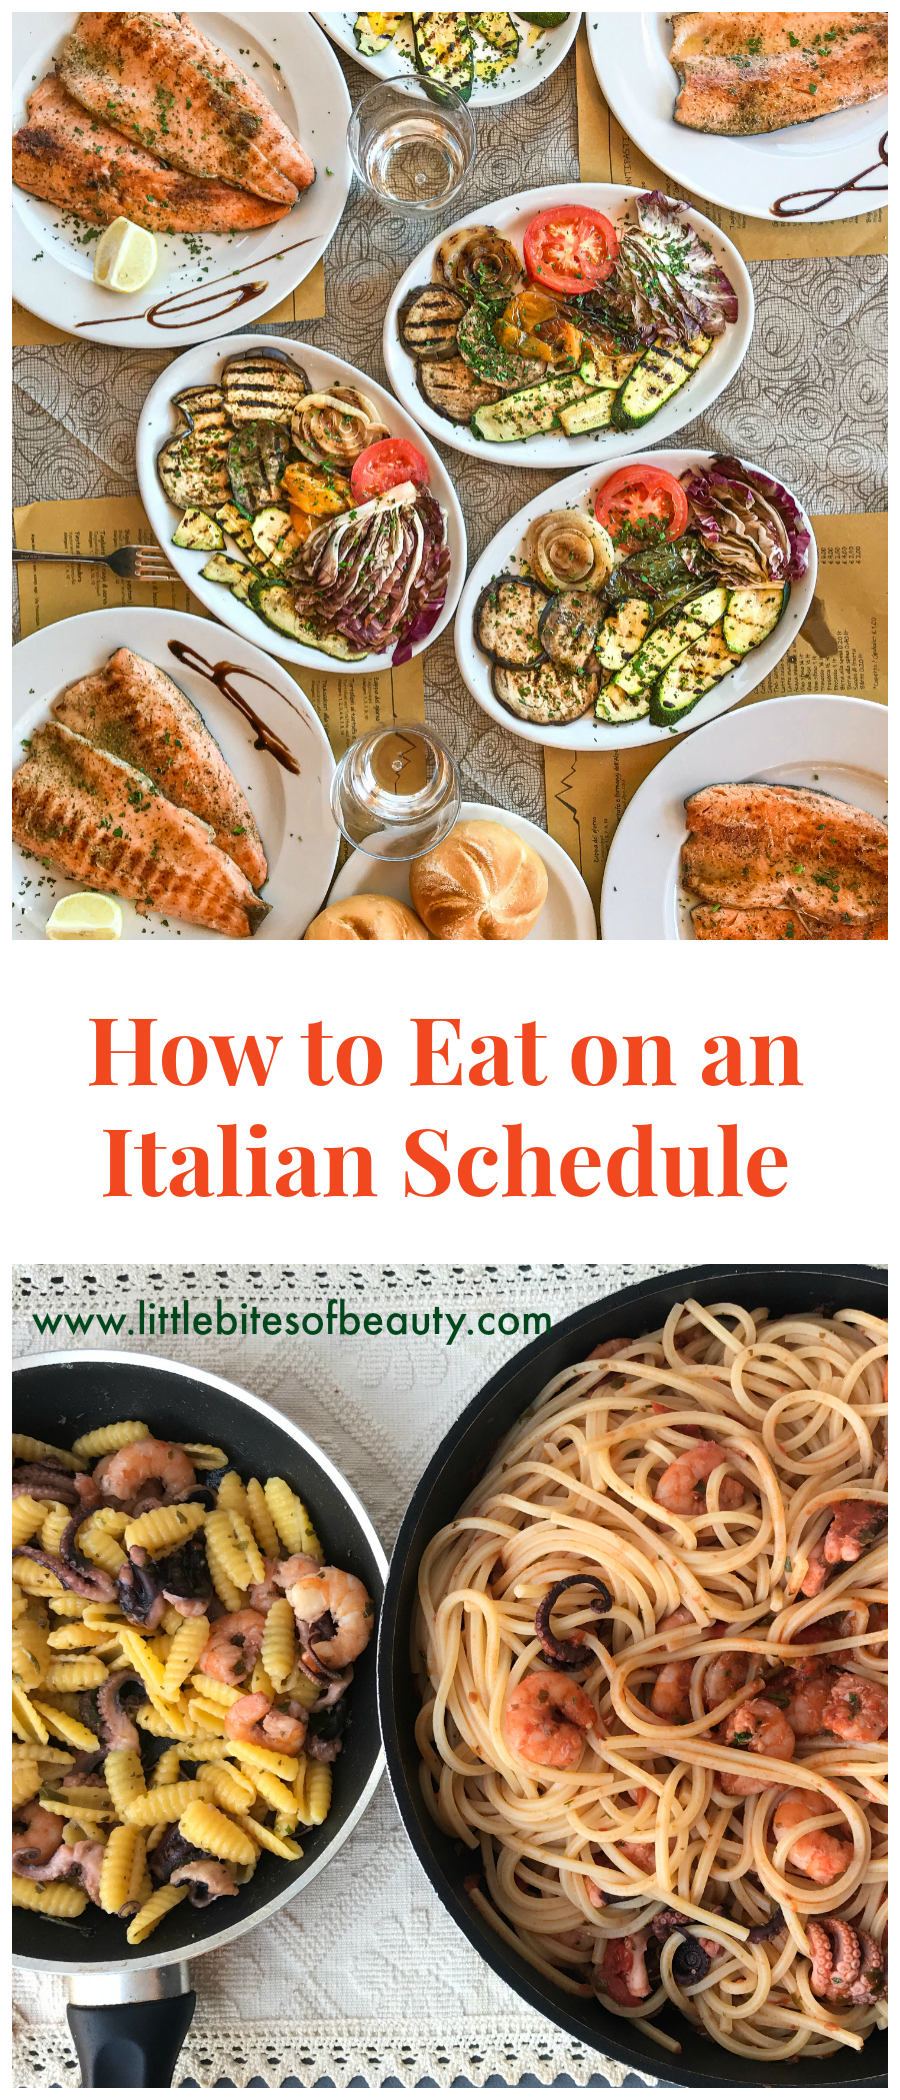 Eating on an Italian Schedule